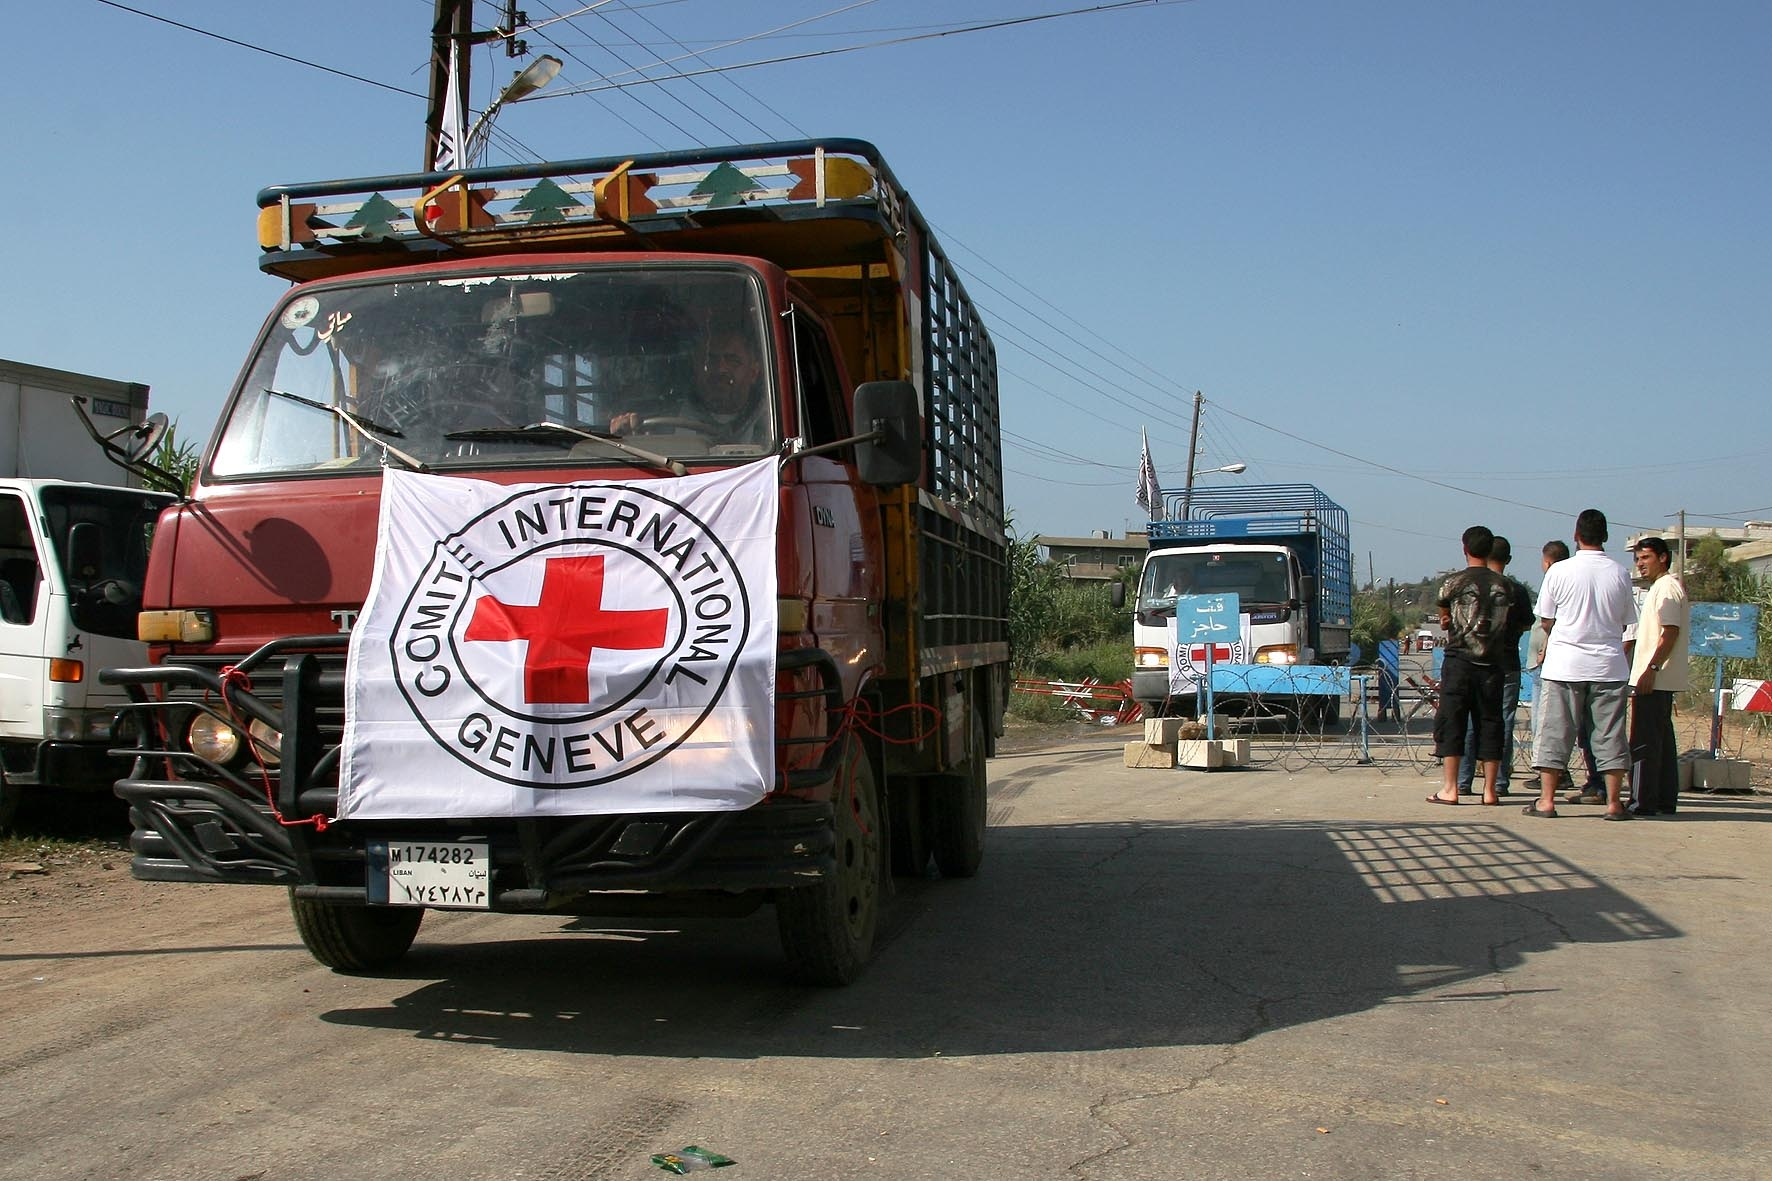 The ICRC delivered water and food to Nahr al-Bared on Saturday, but access to thousands in need remains limited.